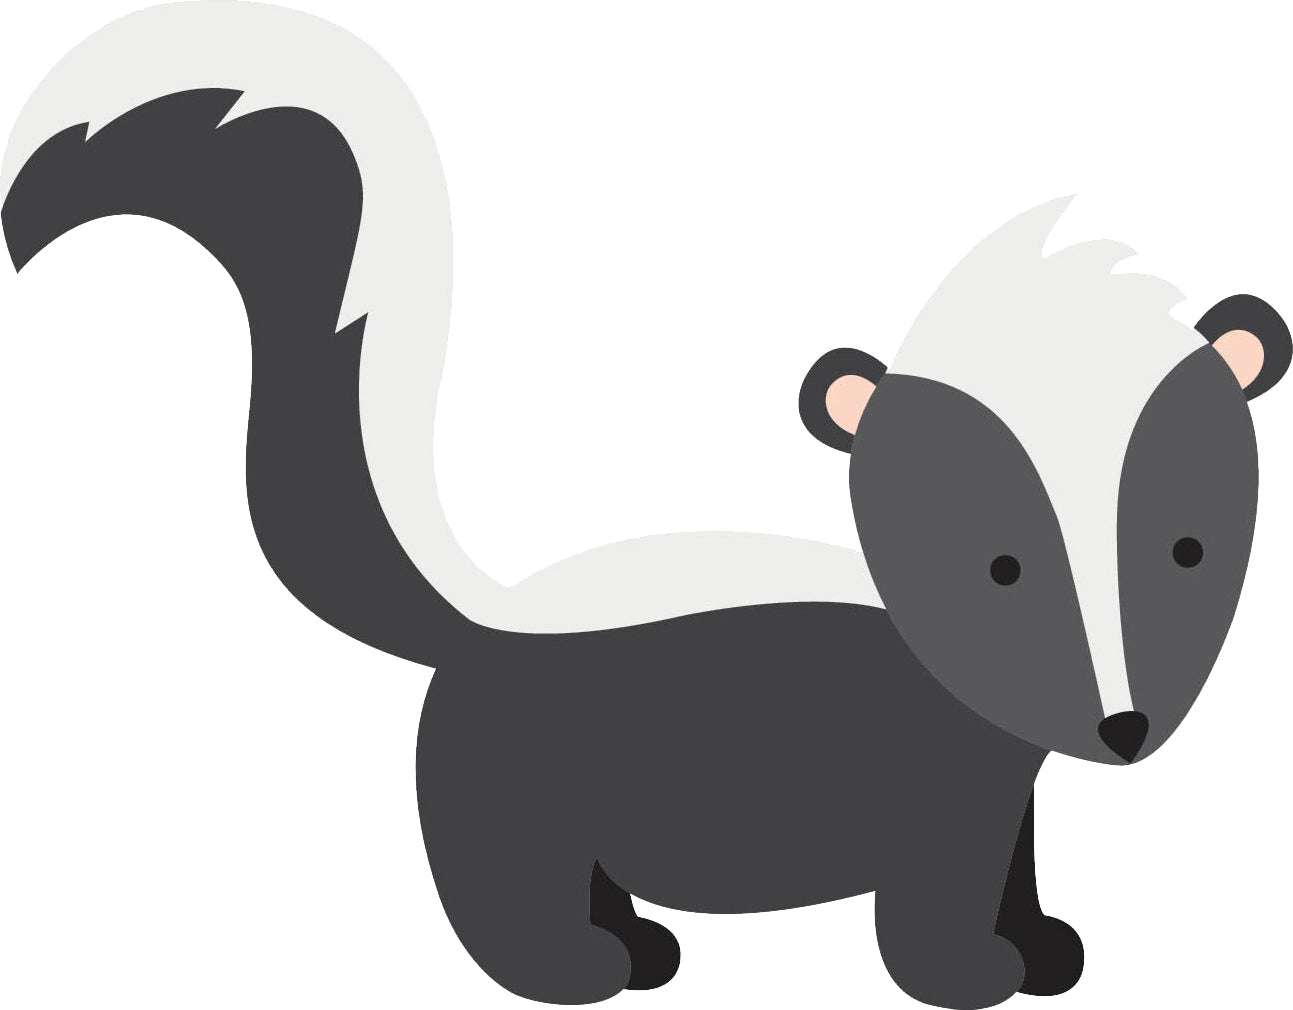 Cute Little Friendly Forest Animal Cartoon - Skunk Vinyl Decal Sticker